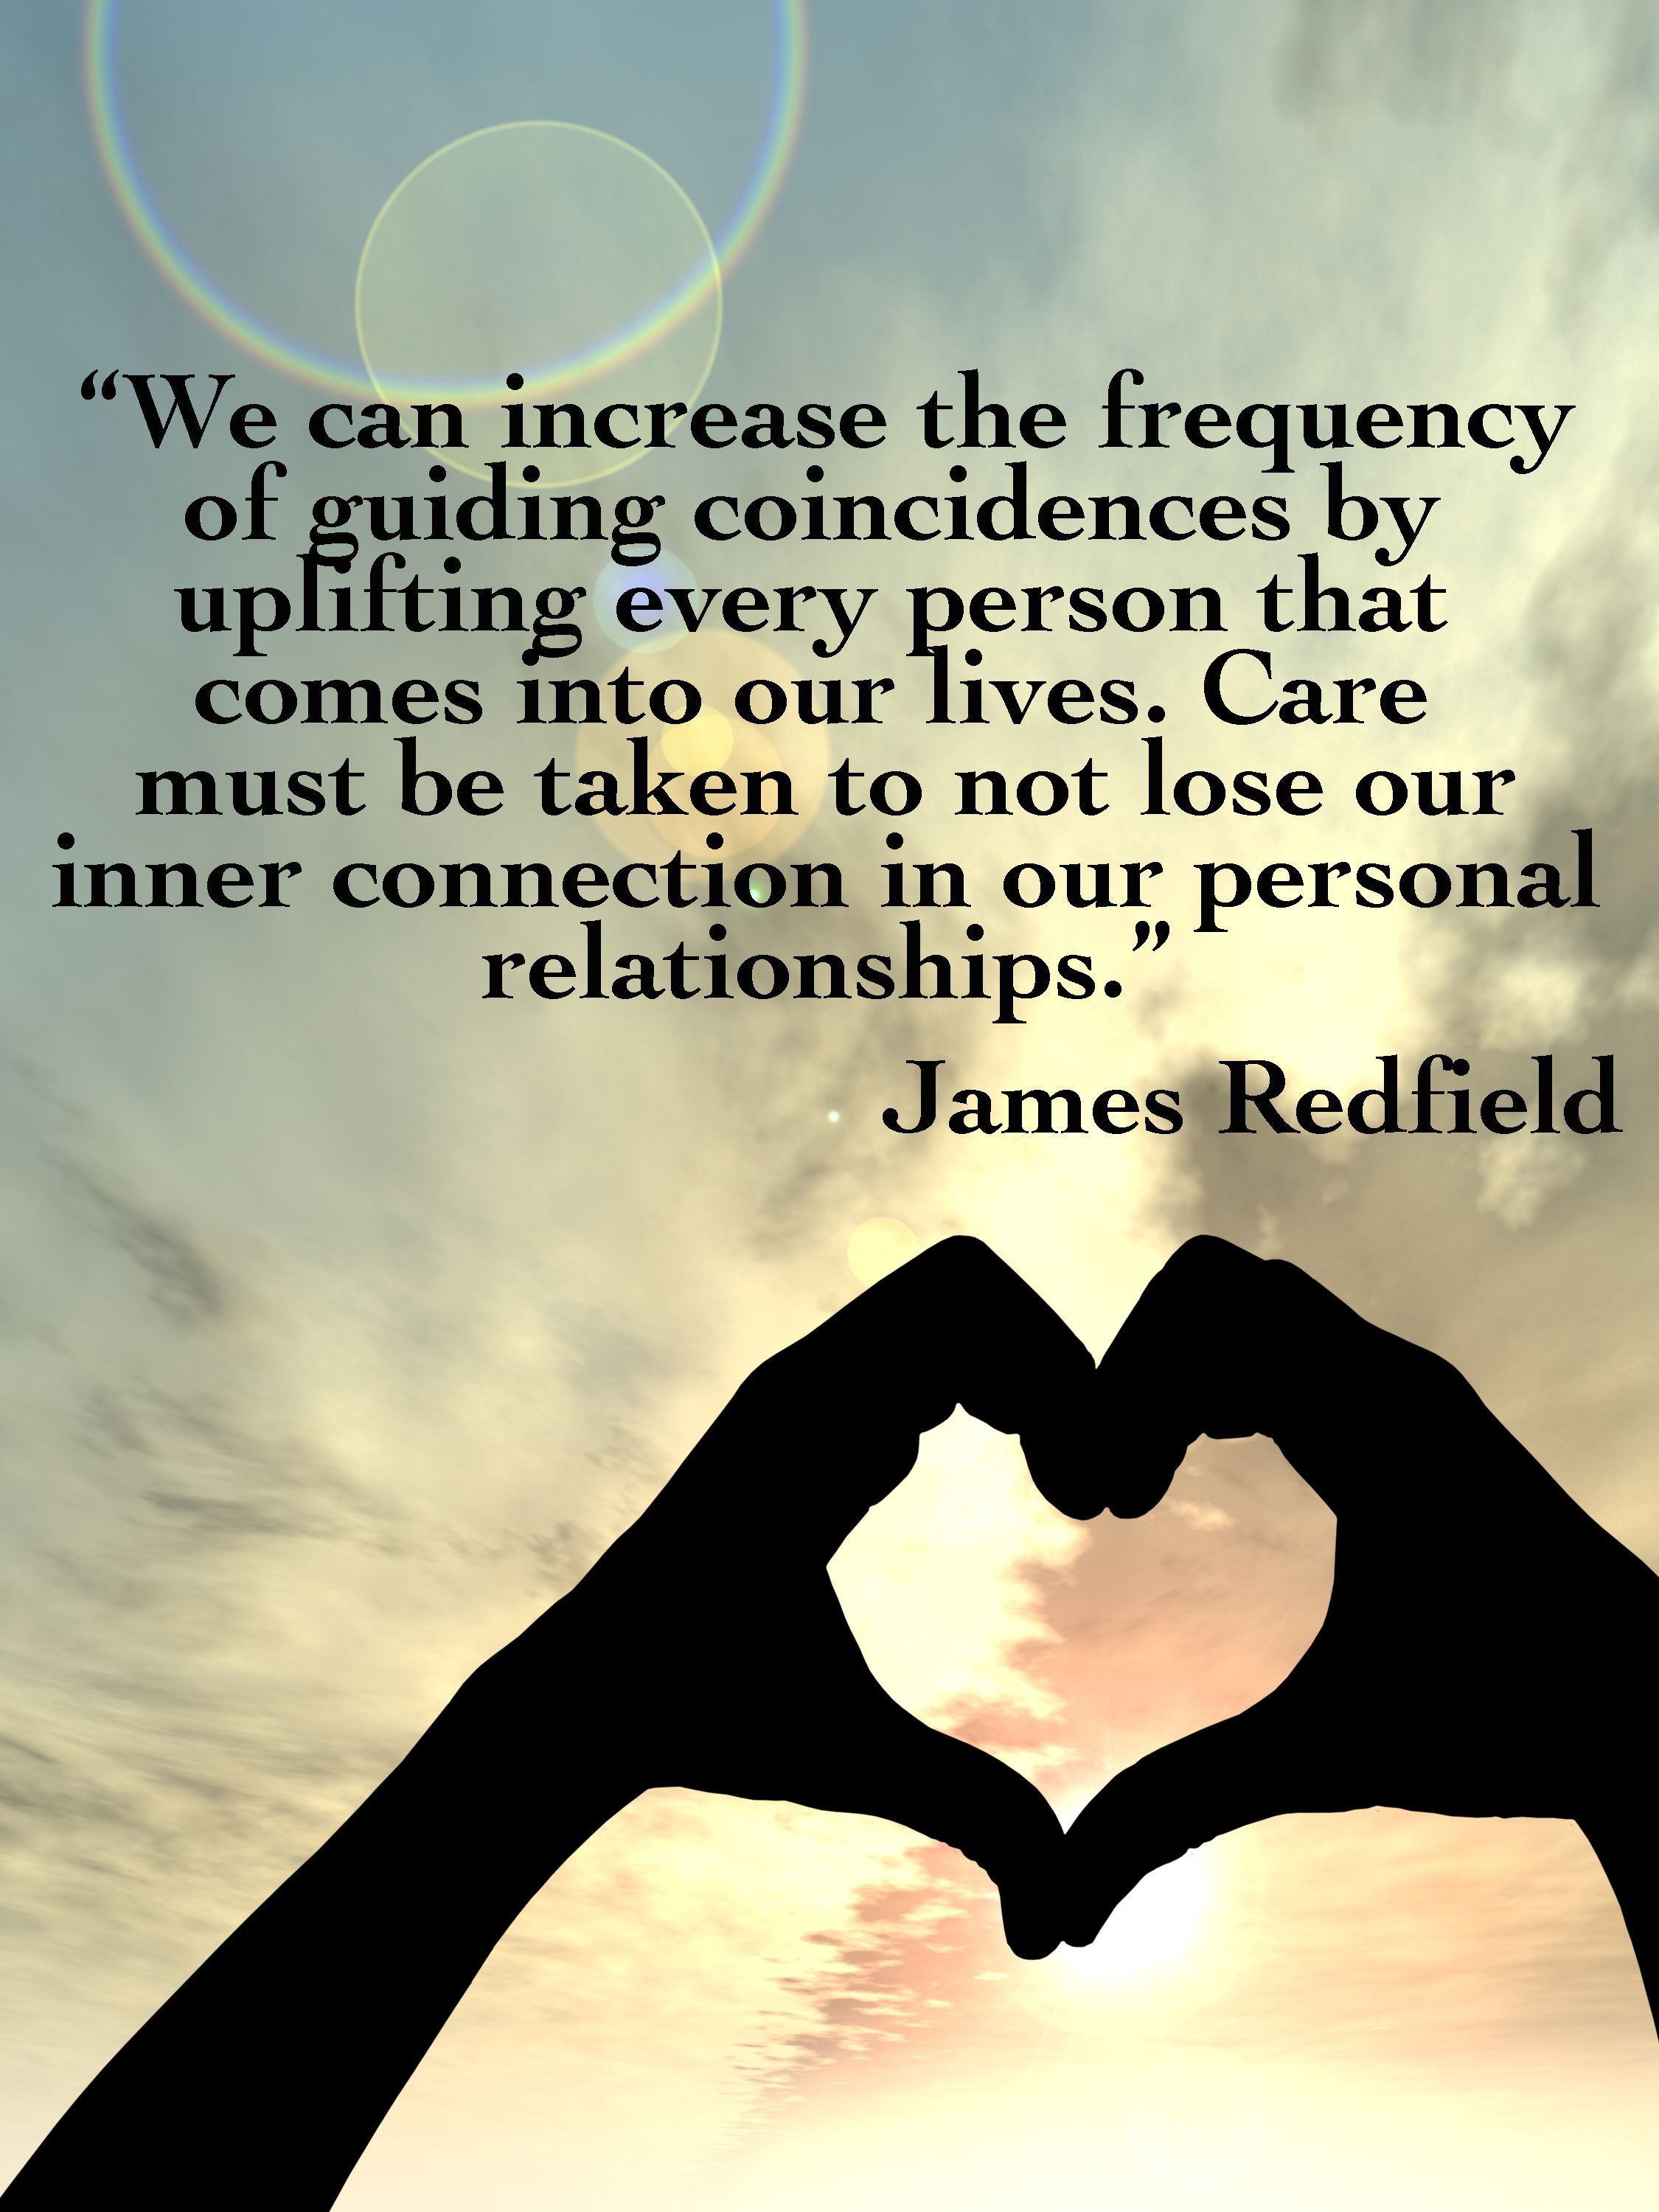 Spiritual Inspirational Quotes Extraordinary Inspirational And Spiritual Quotesjames Redfield  Celestine